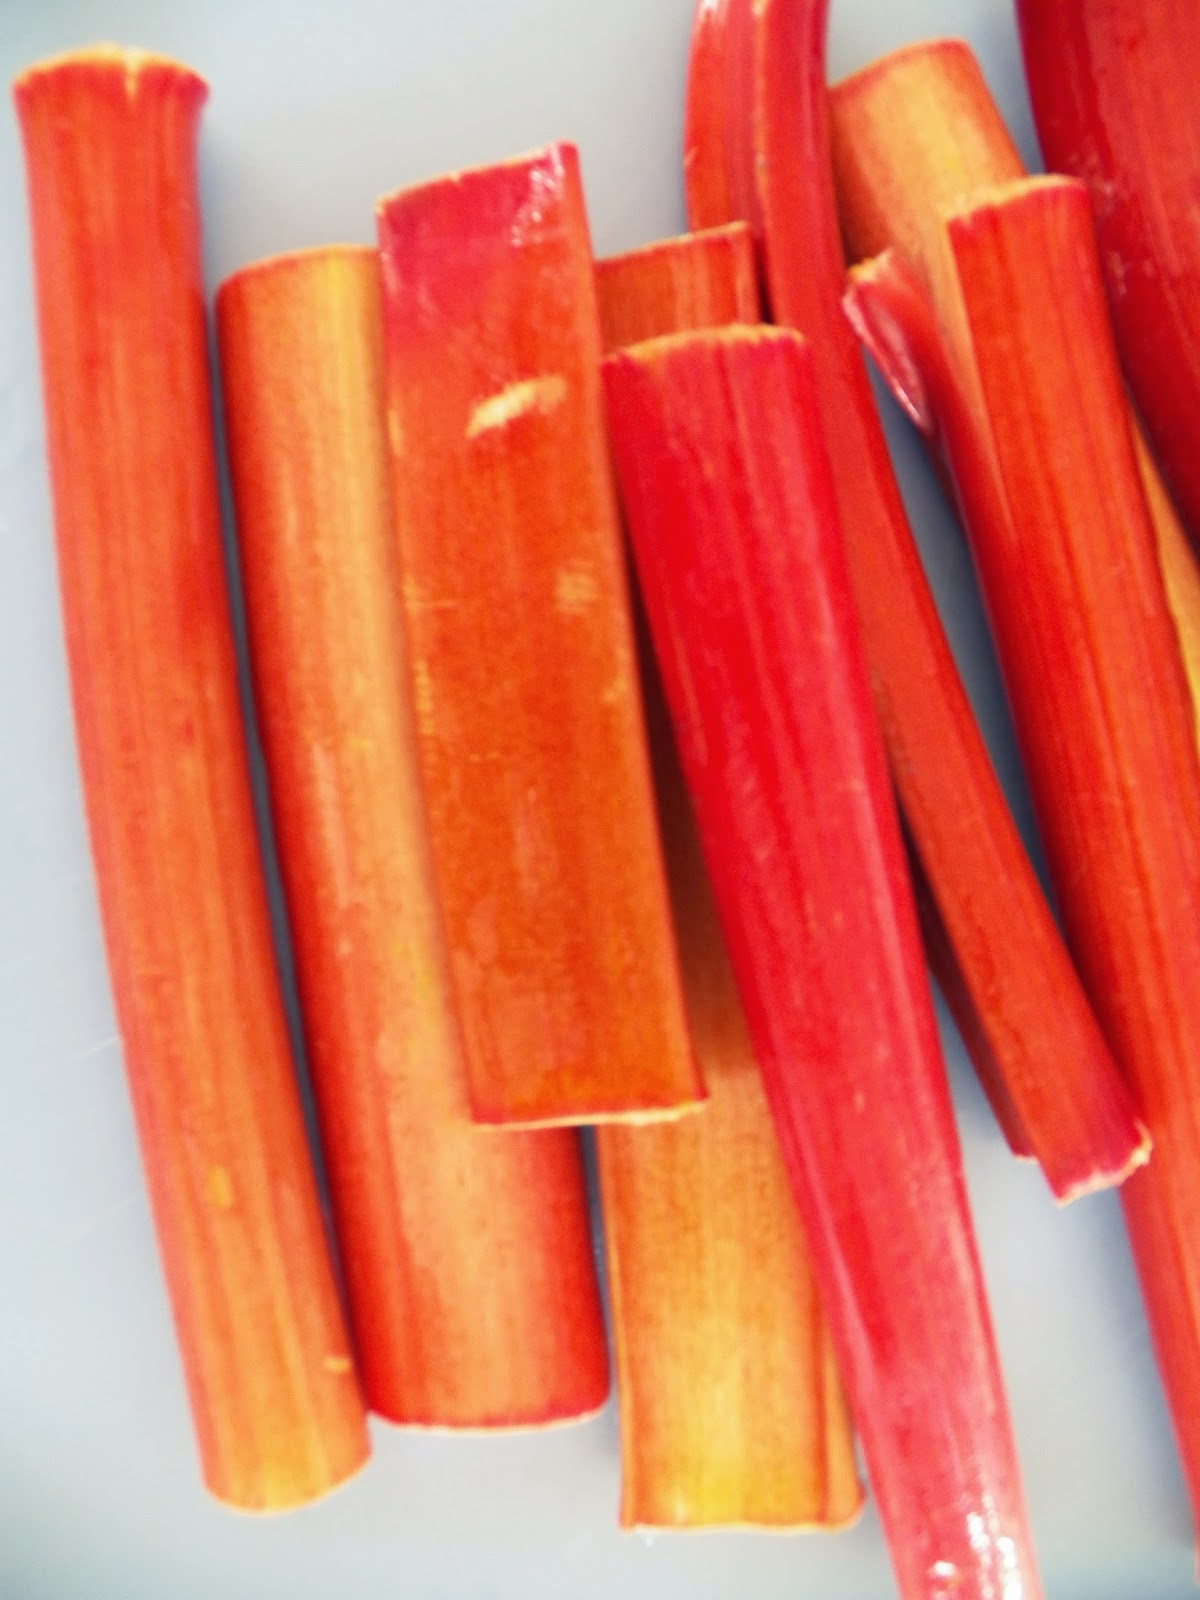 how to prepare rhubarb for cooking